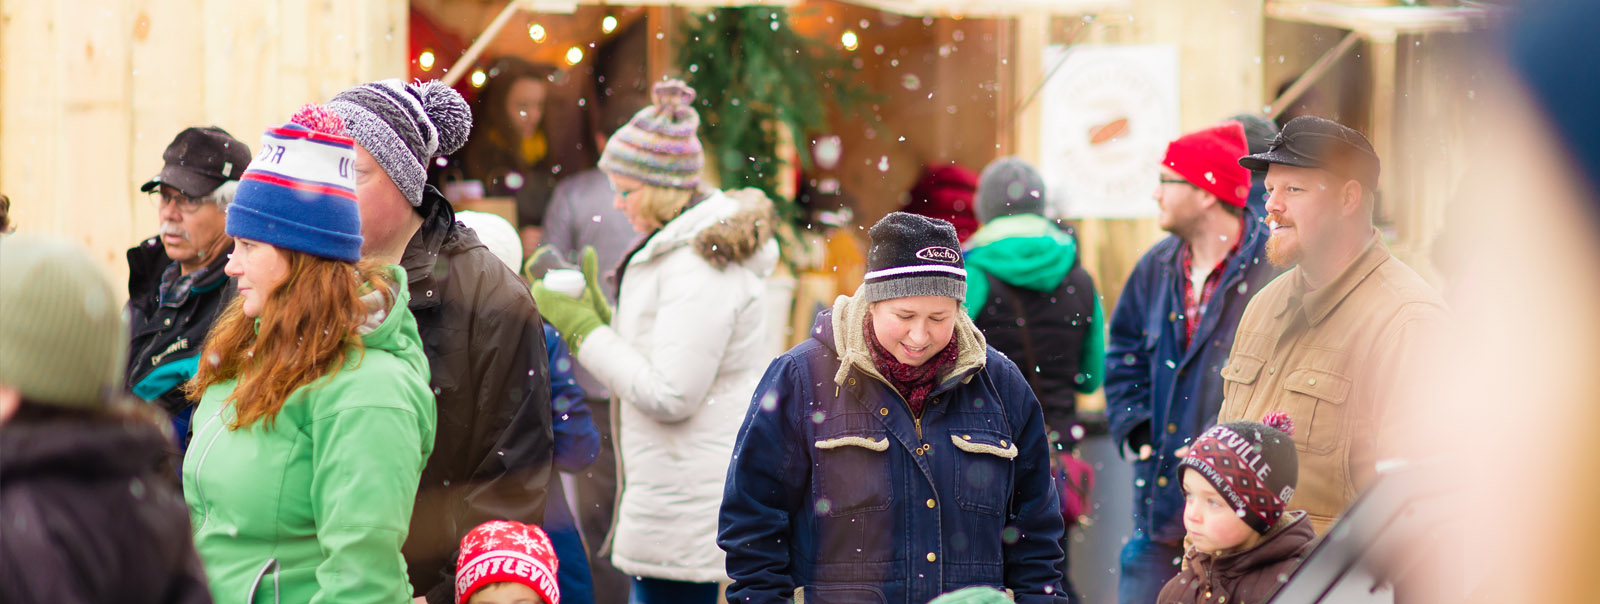 Get festive at this one-of-a-kind outdoor winter market in Duluth, Minnesota